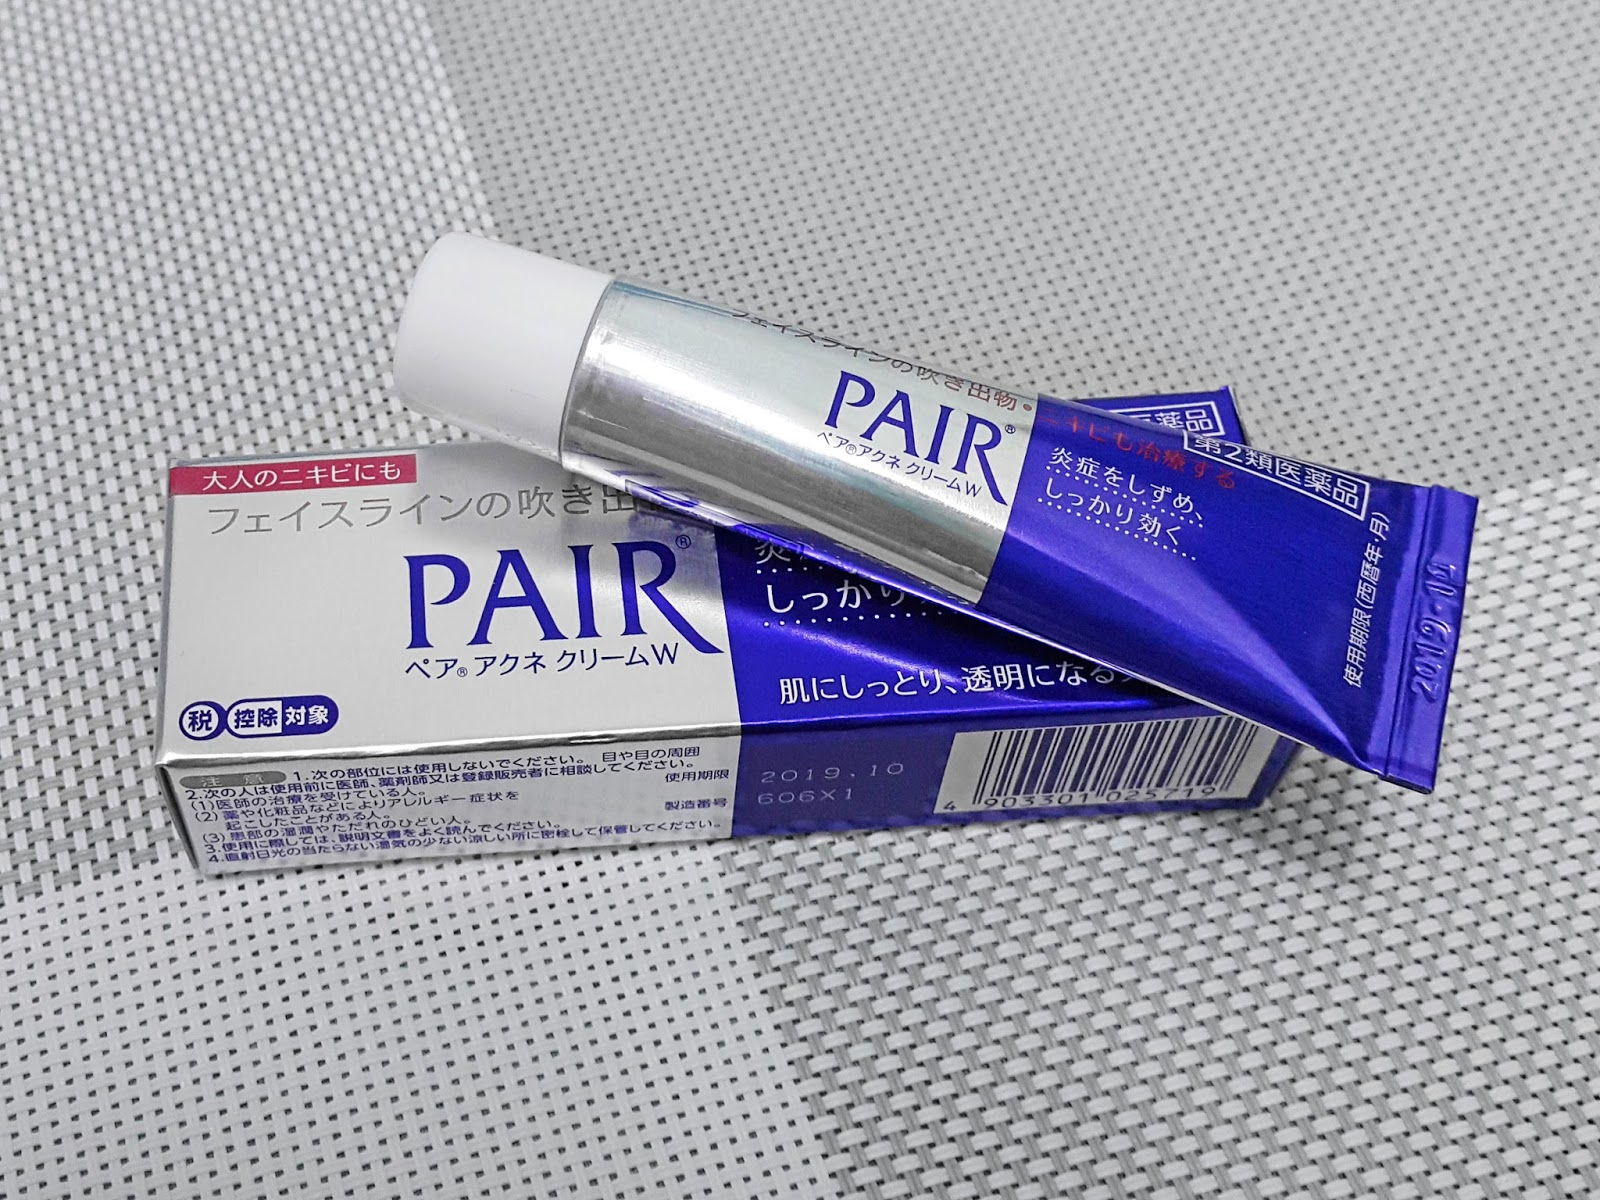 Review Lion Pair Medicated Acne Care Cream W Just An Ordinary Girl